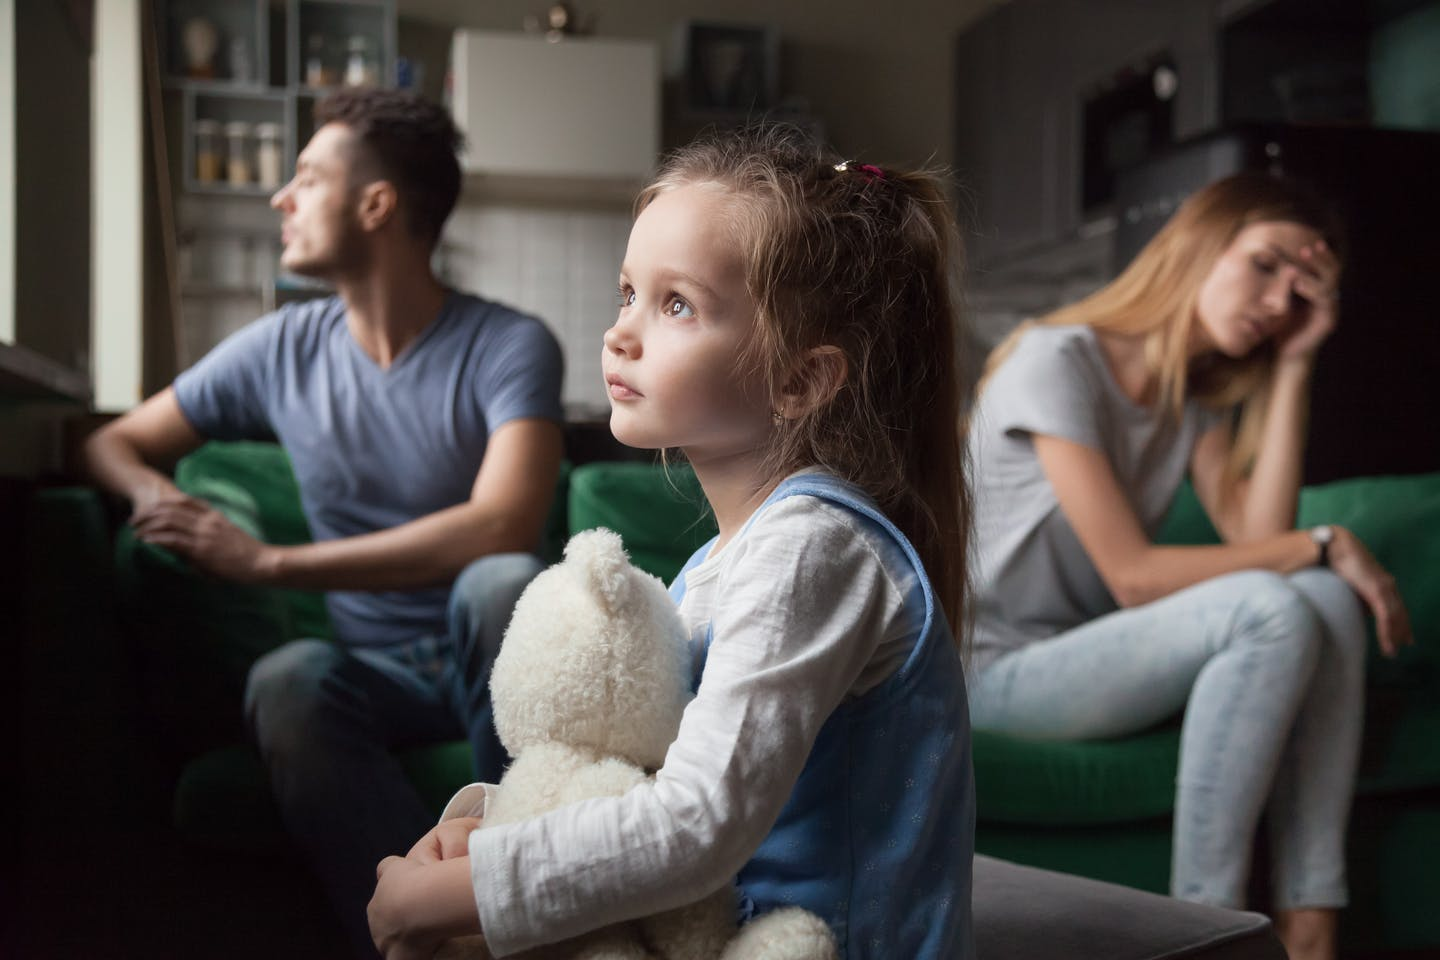 Child holding bear while parents look stressed out on couch.